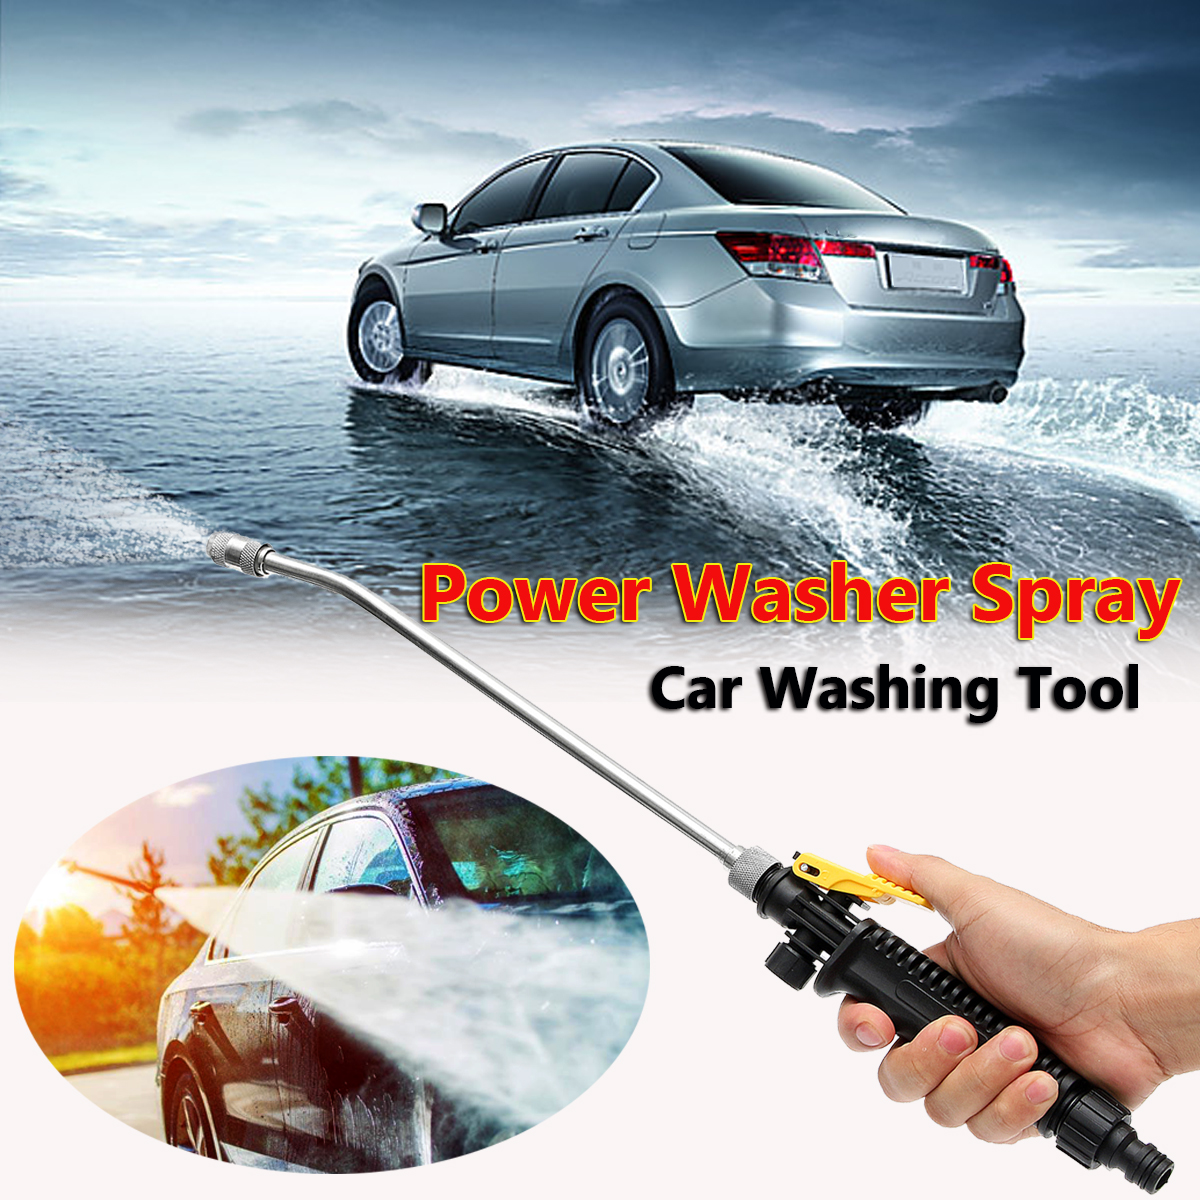 45cm High Pressure Power Washer Spray Car Bend Washing Water Gun Tool